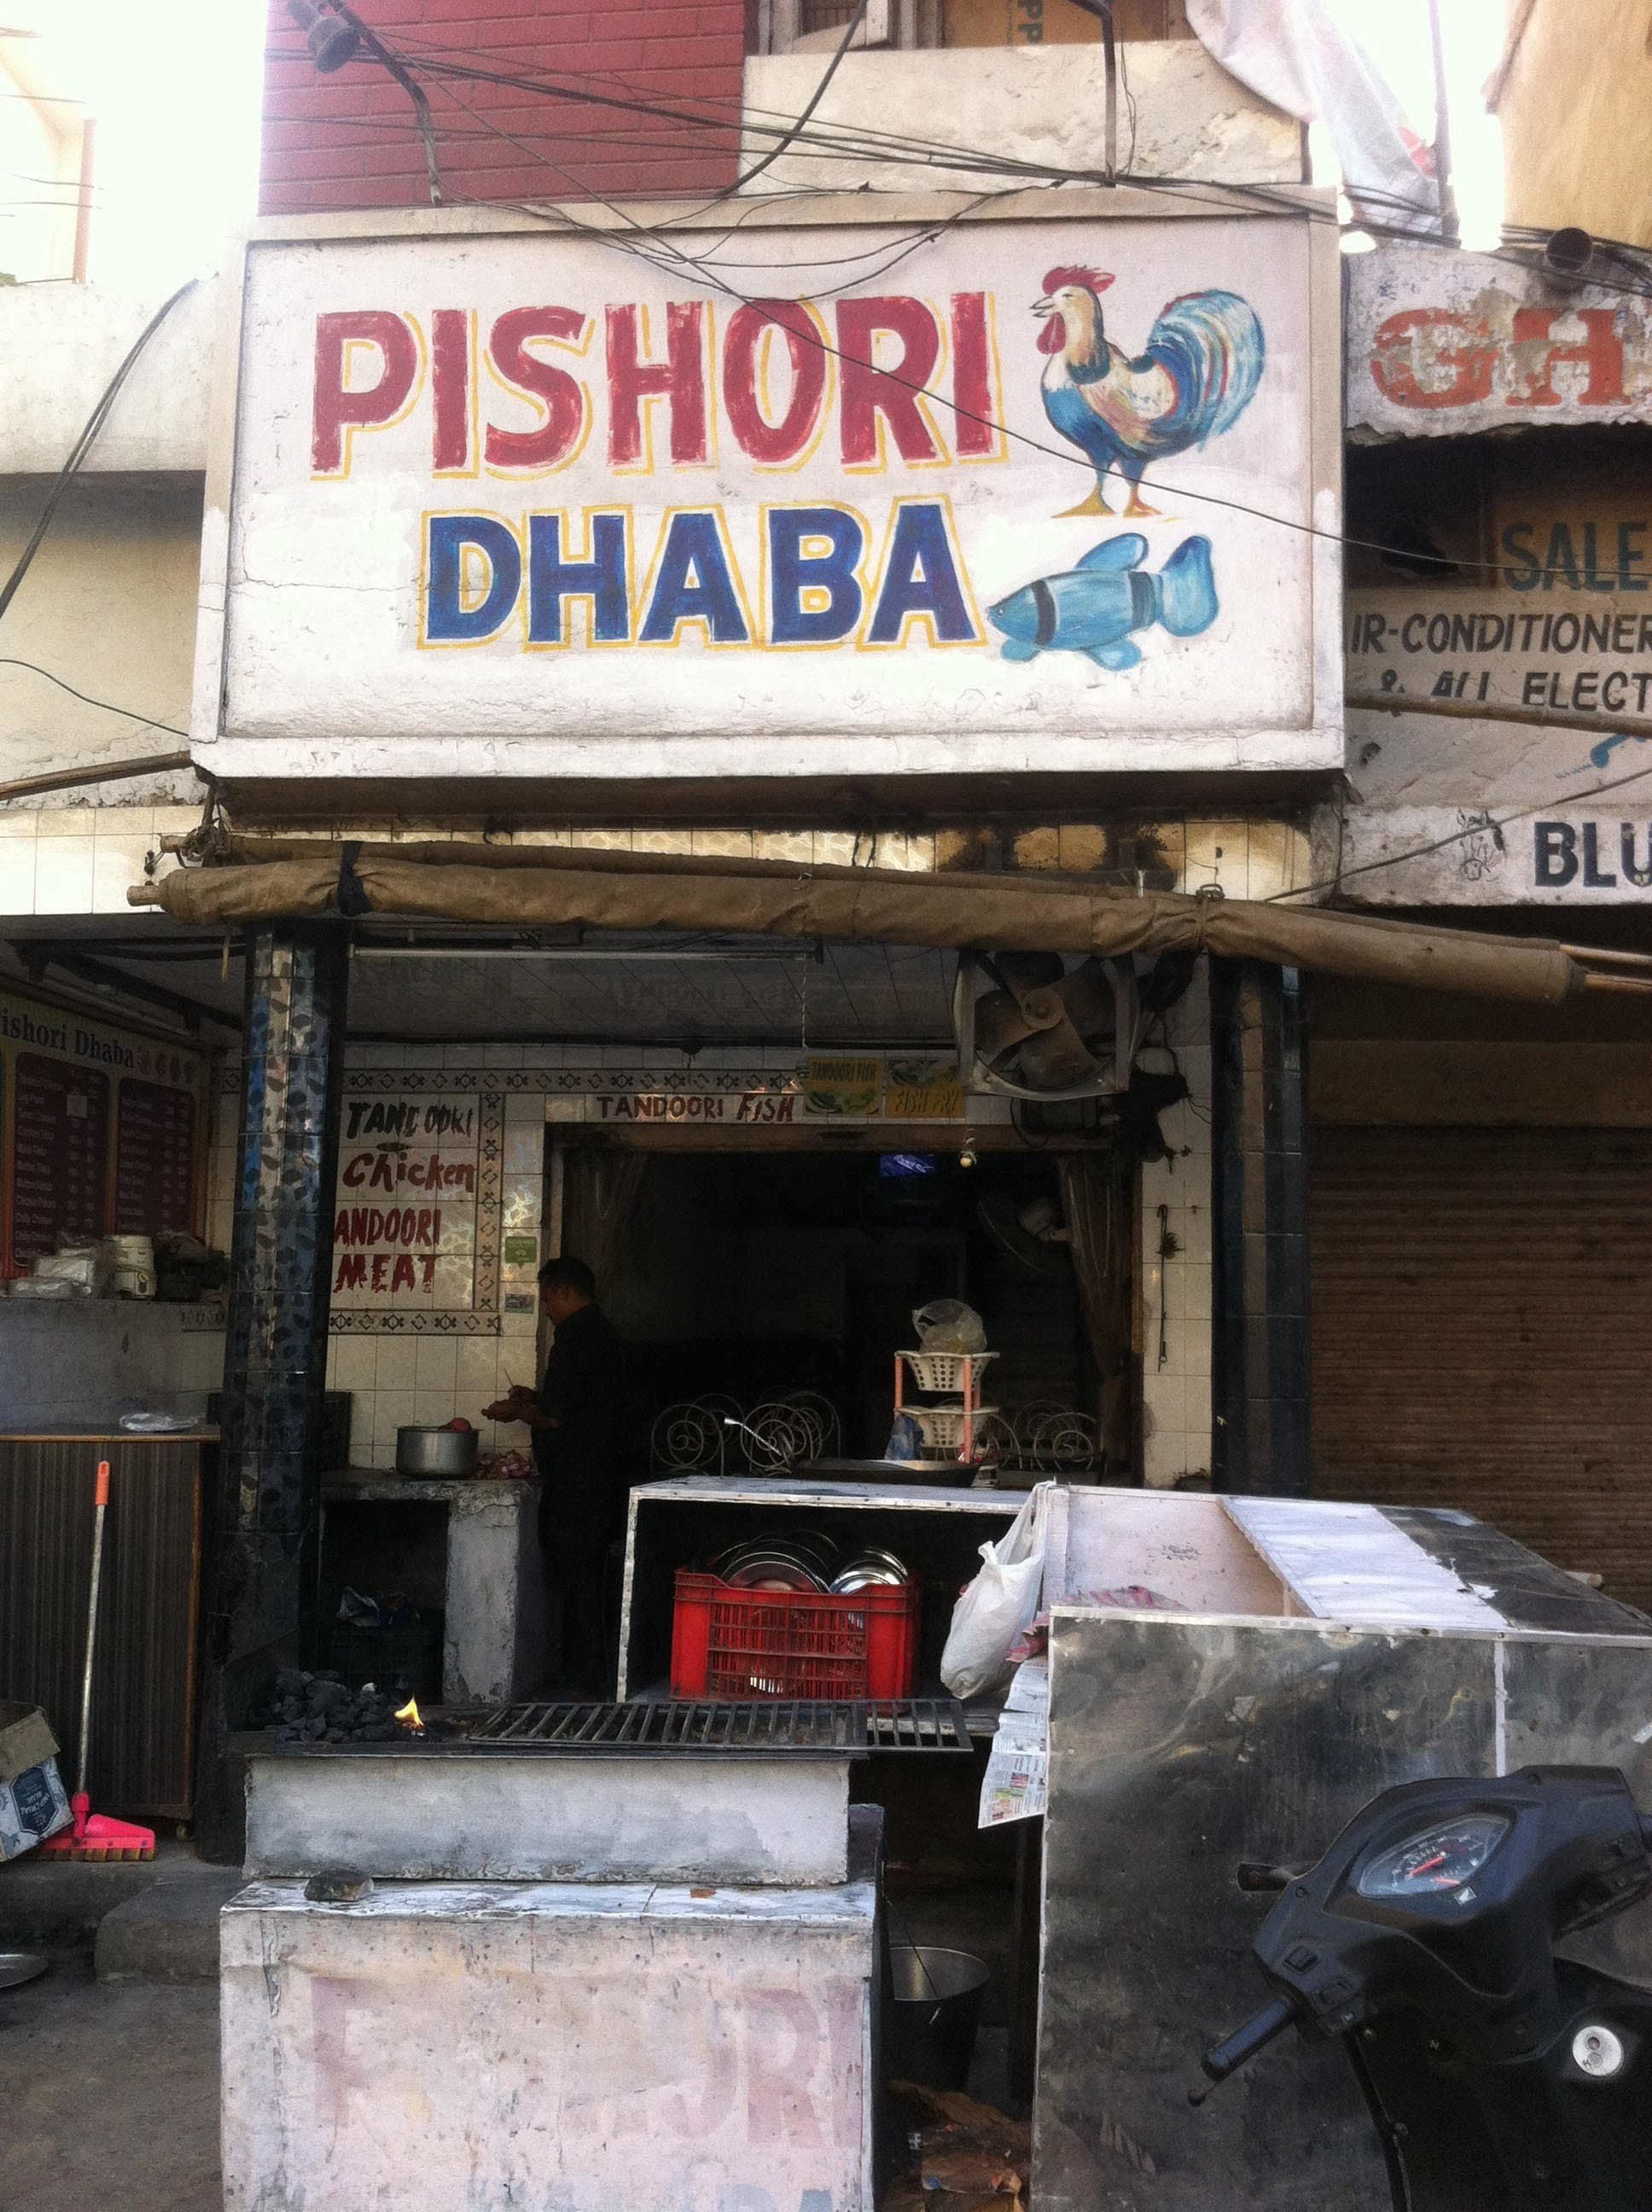 Pishori Dhaba - ludhiana Junction - Ludhiana Image